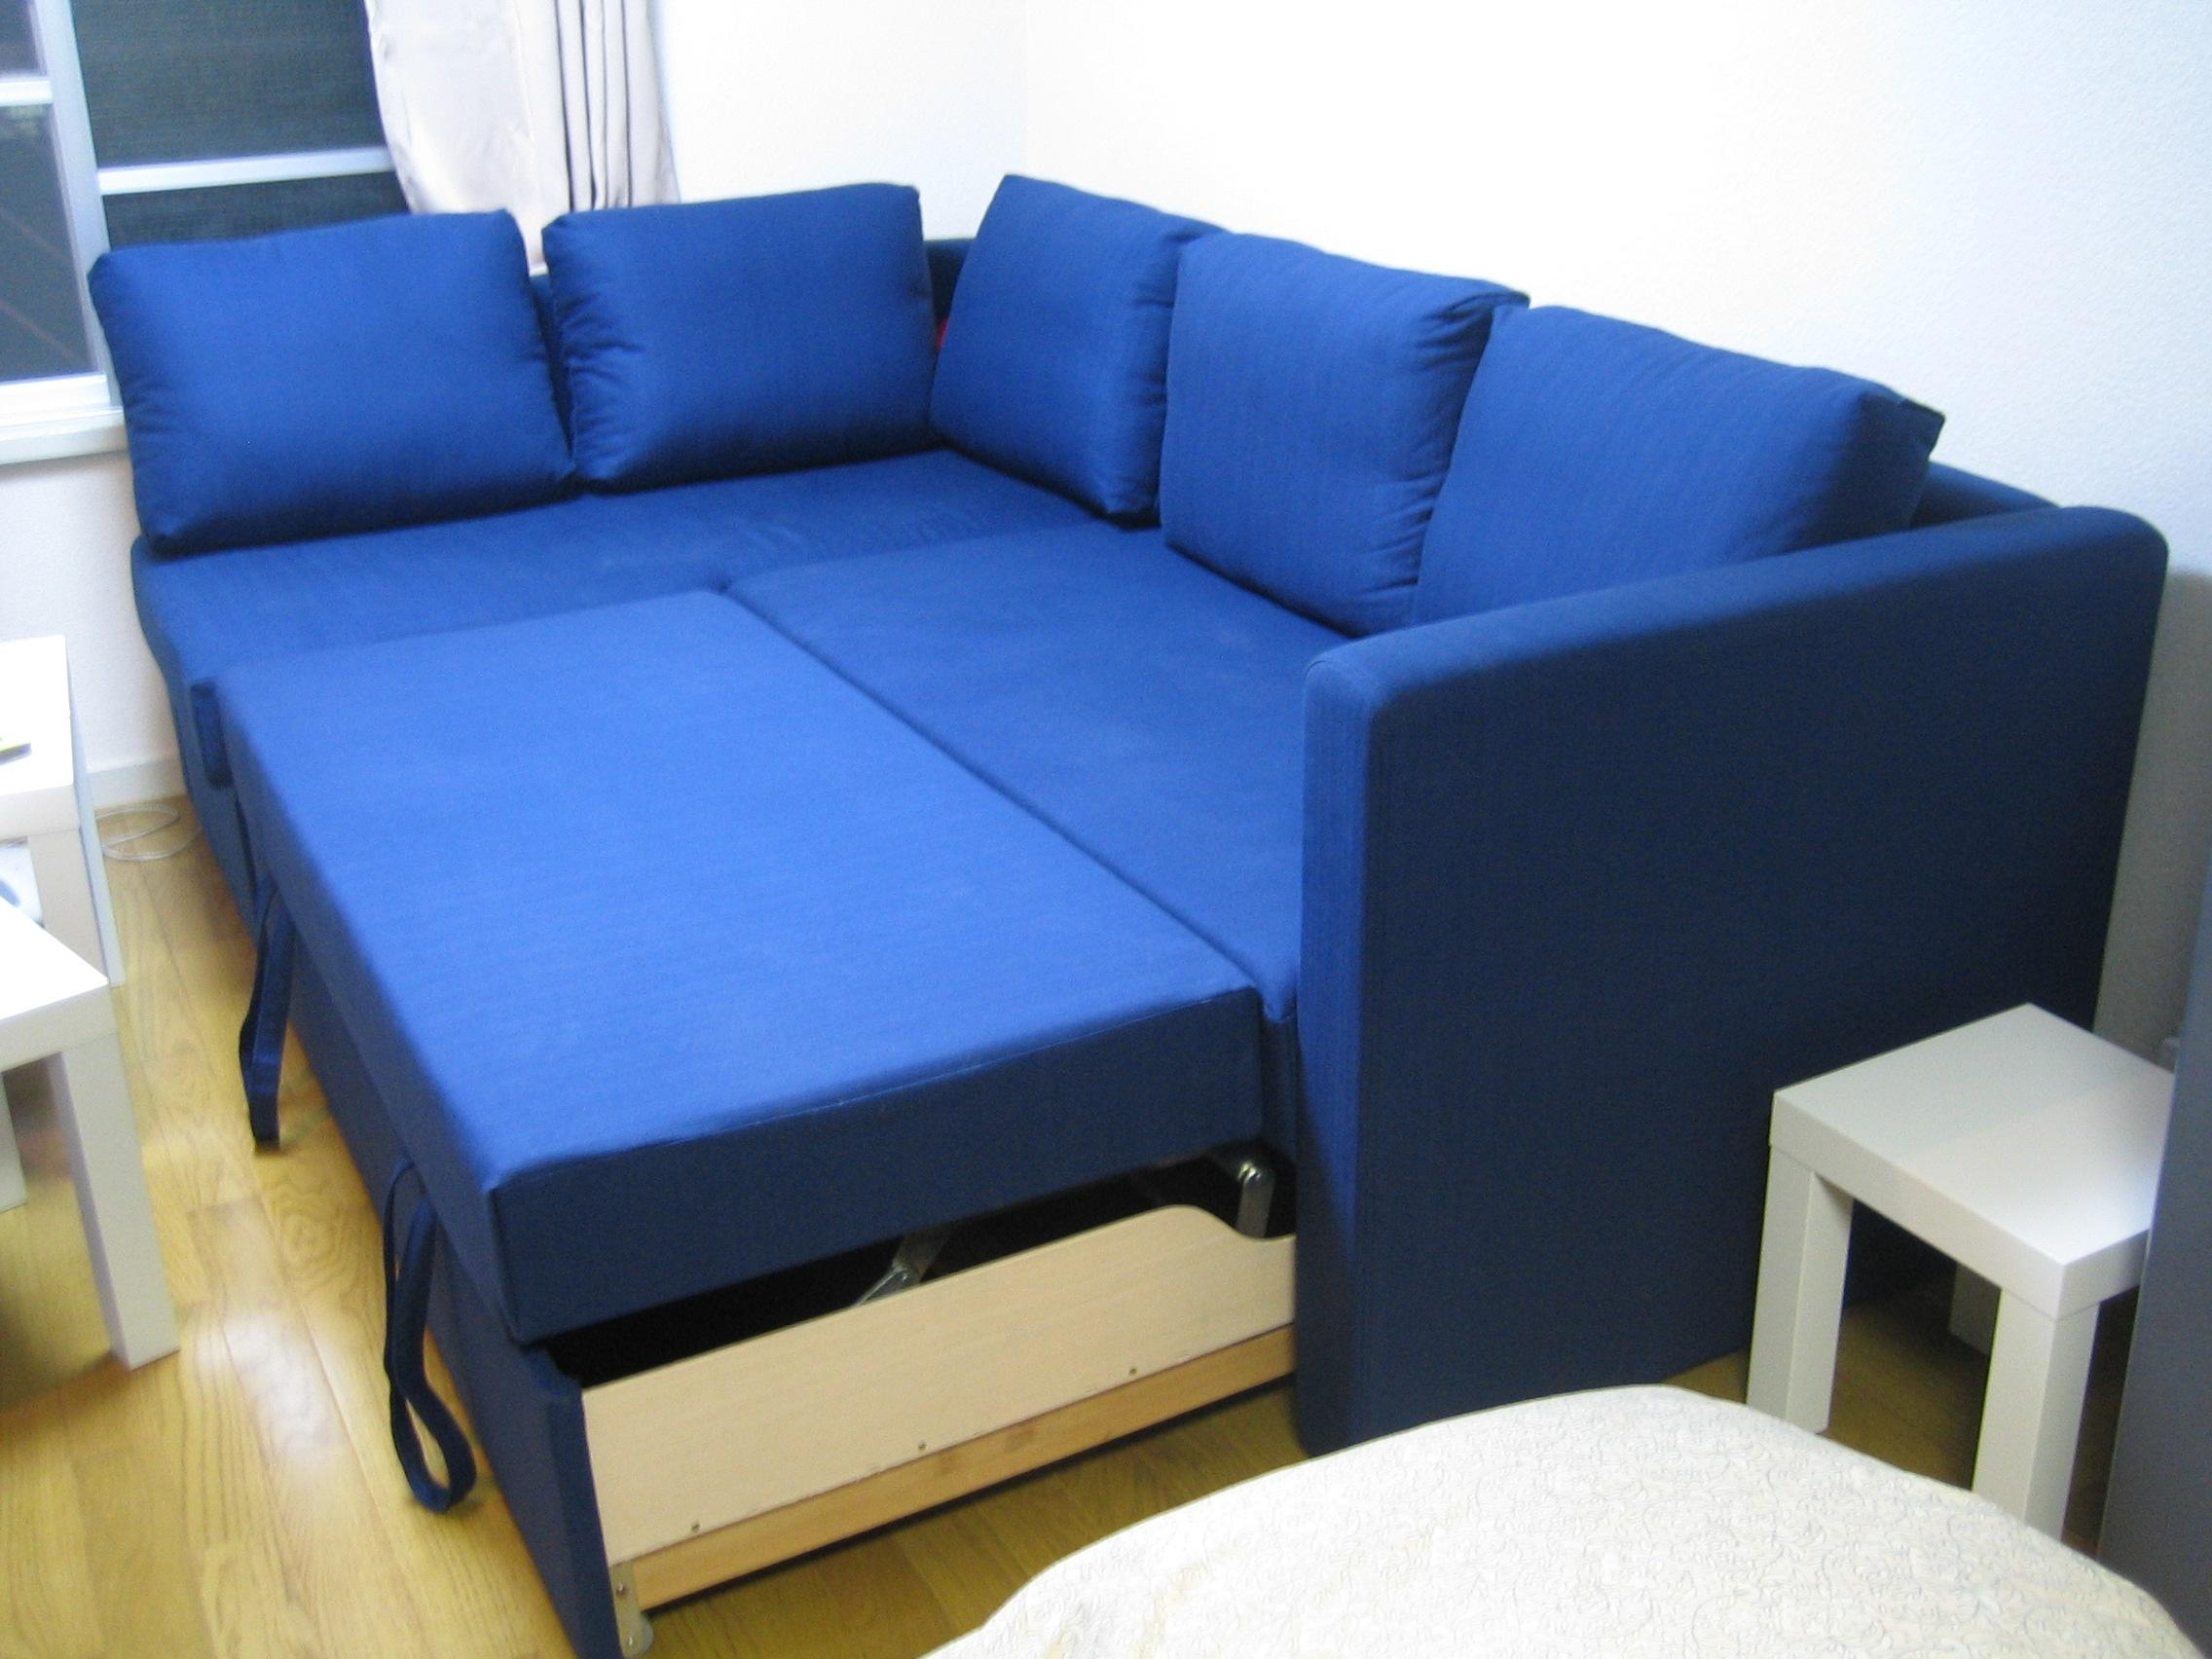 Furniture: Ikea Sofa Bed | Ikea Sofa Beds | Friheten Ikea Sofa Bed Pertaining To Ikea Storage Sofa Bed (View 6 of 20)